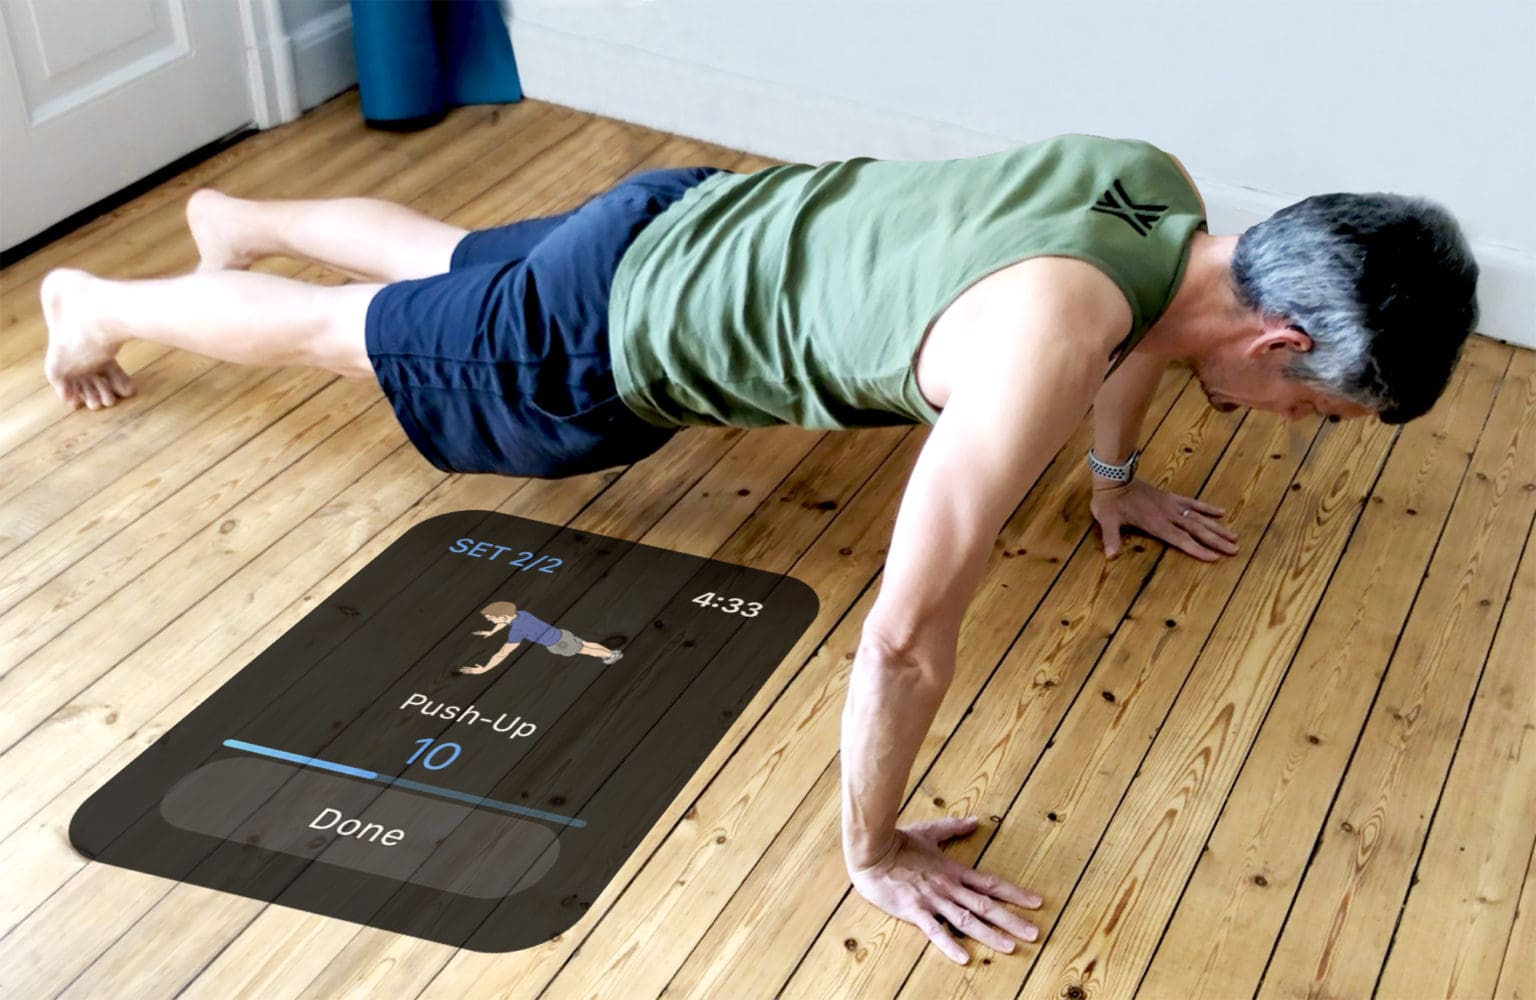 Log push-ups effortlessly with iPhone and Apple Watch